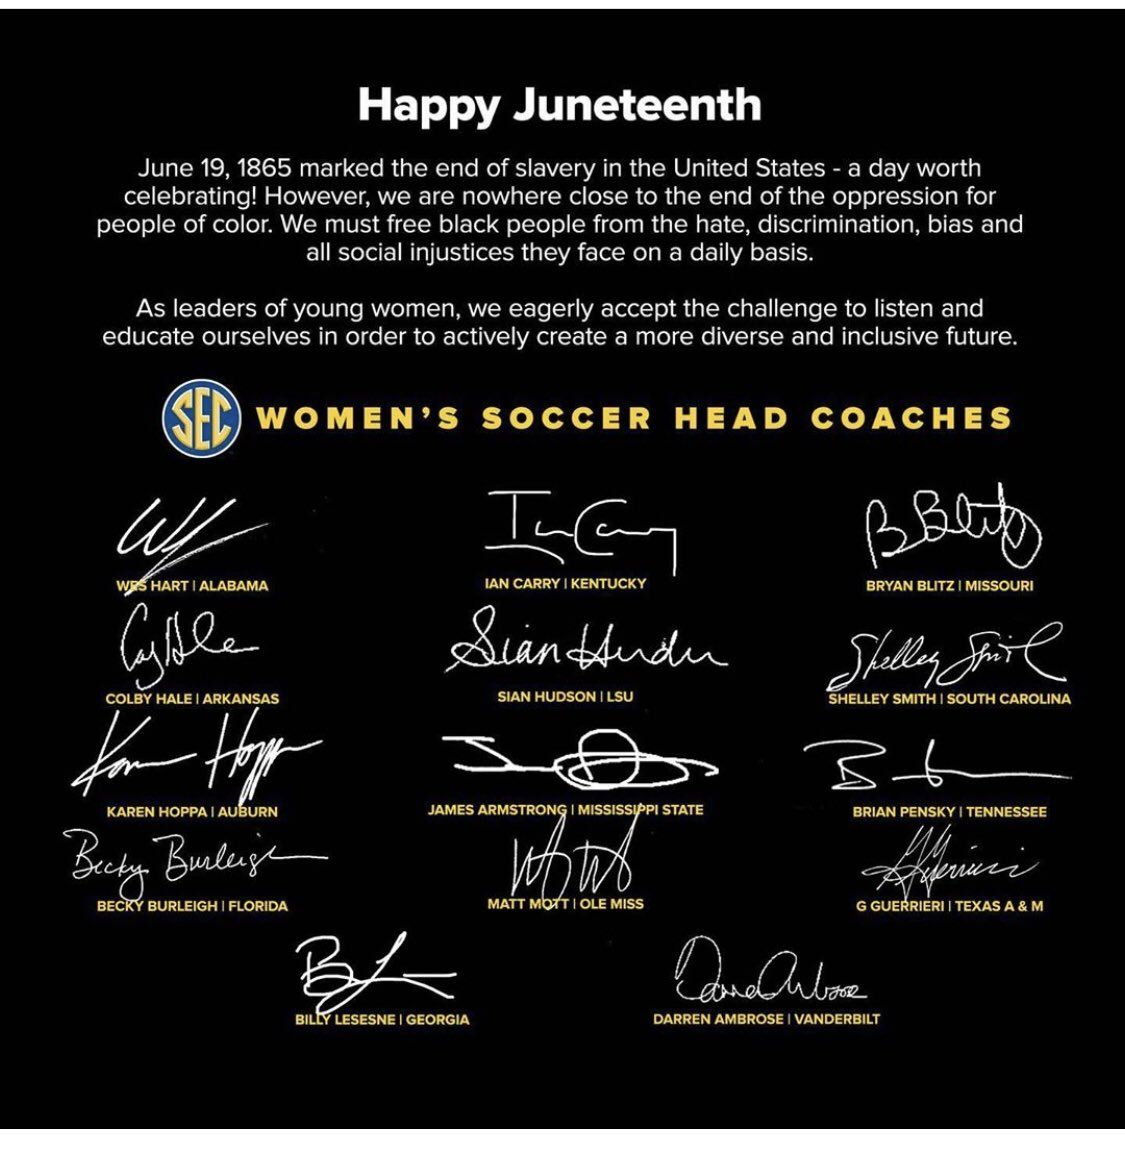 Nice work. but shouldn't there be more head coaches that are women